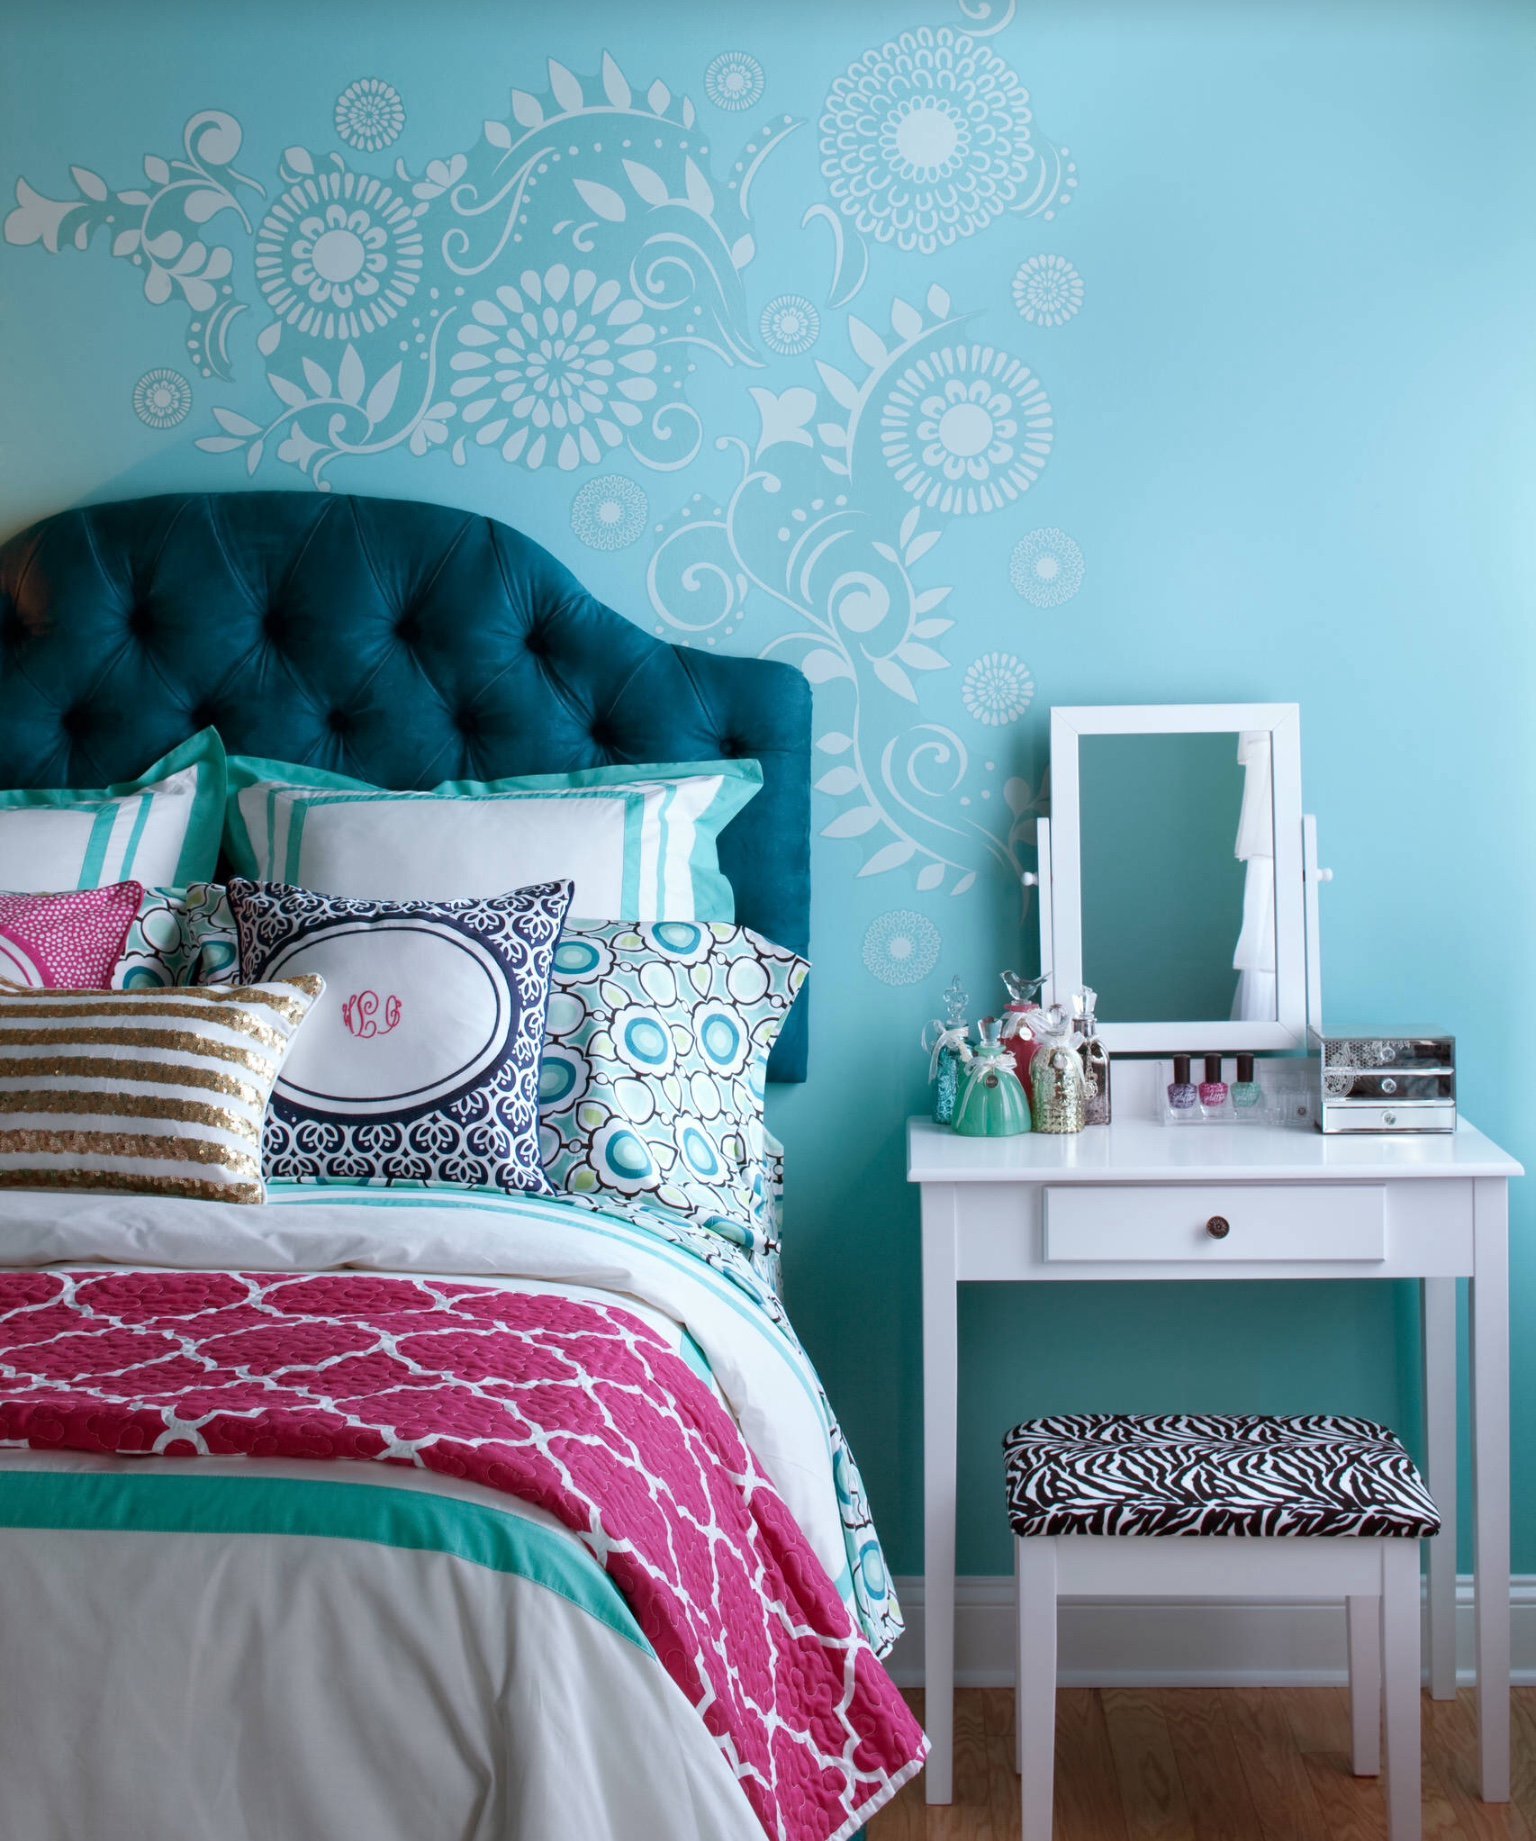 benjamin_moore_mexicali-turquoise_662(7)